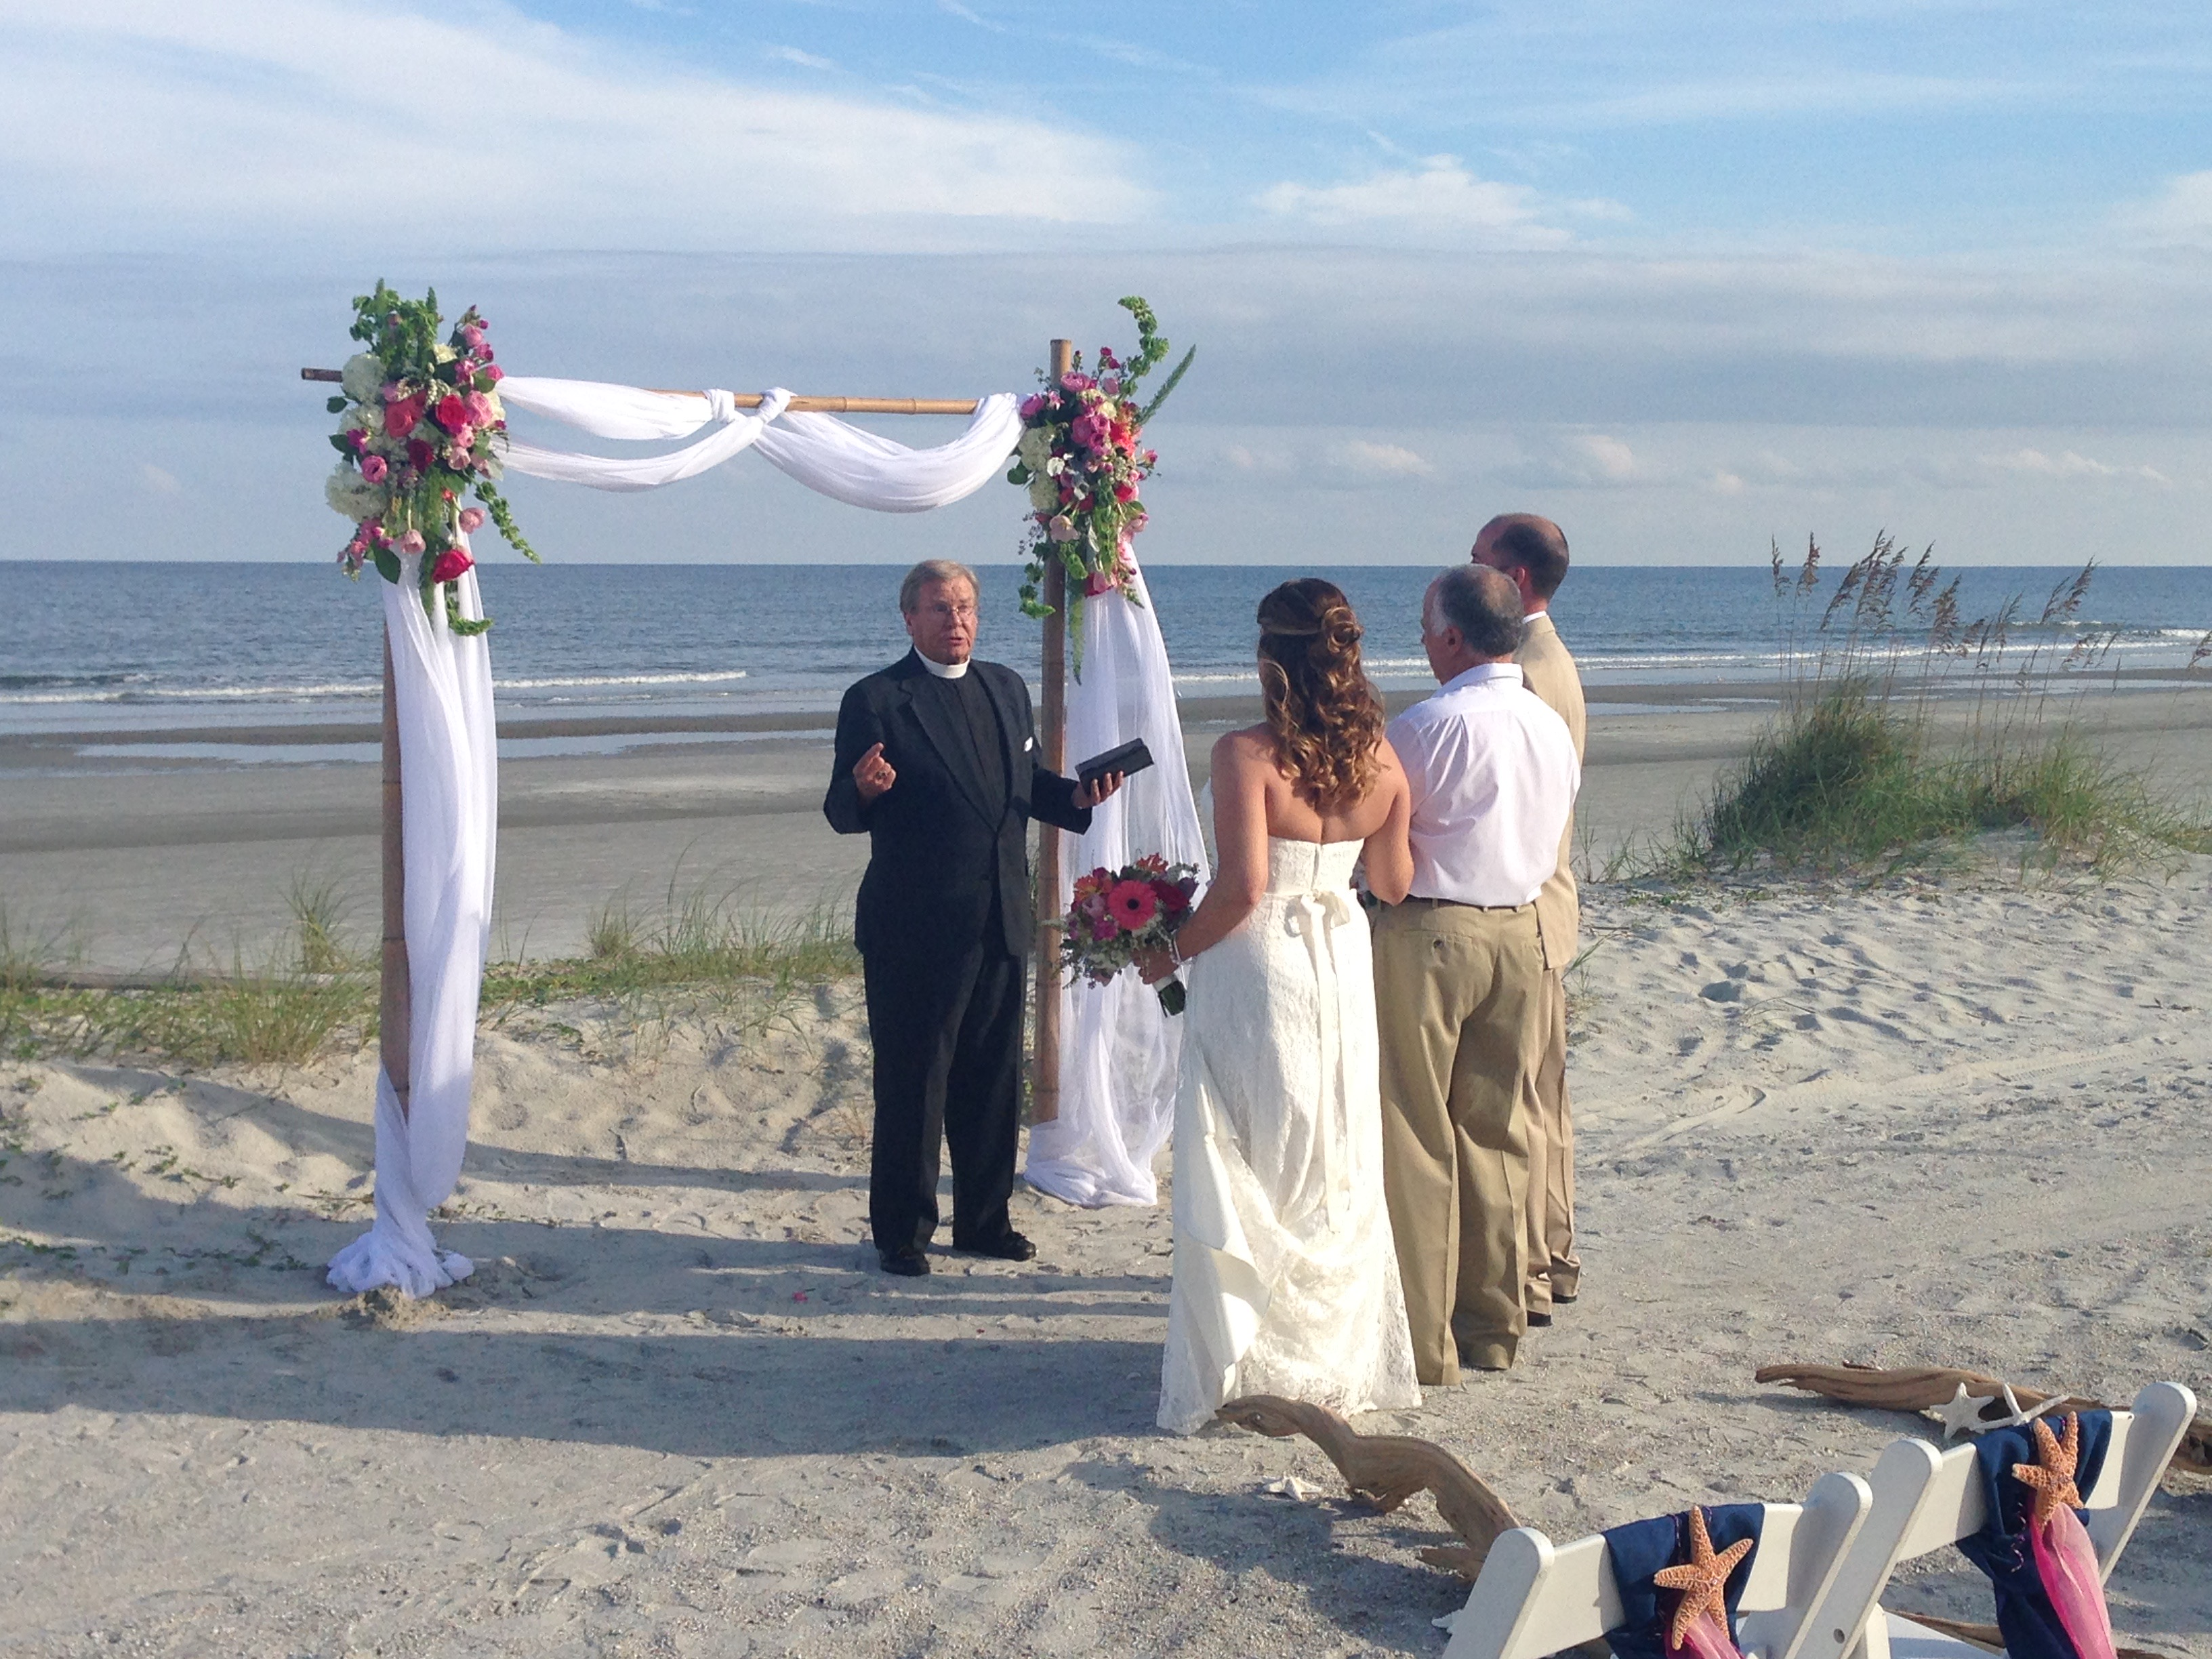 Sean Driscoll Plays Guitar For A Lovely On Perfect Beach Wedding Day